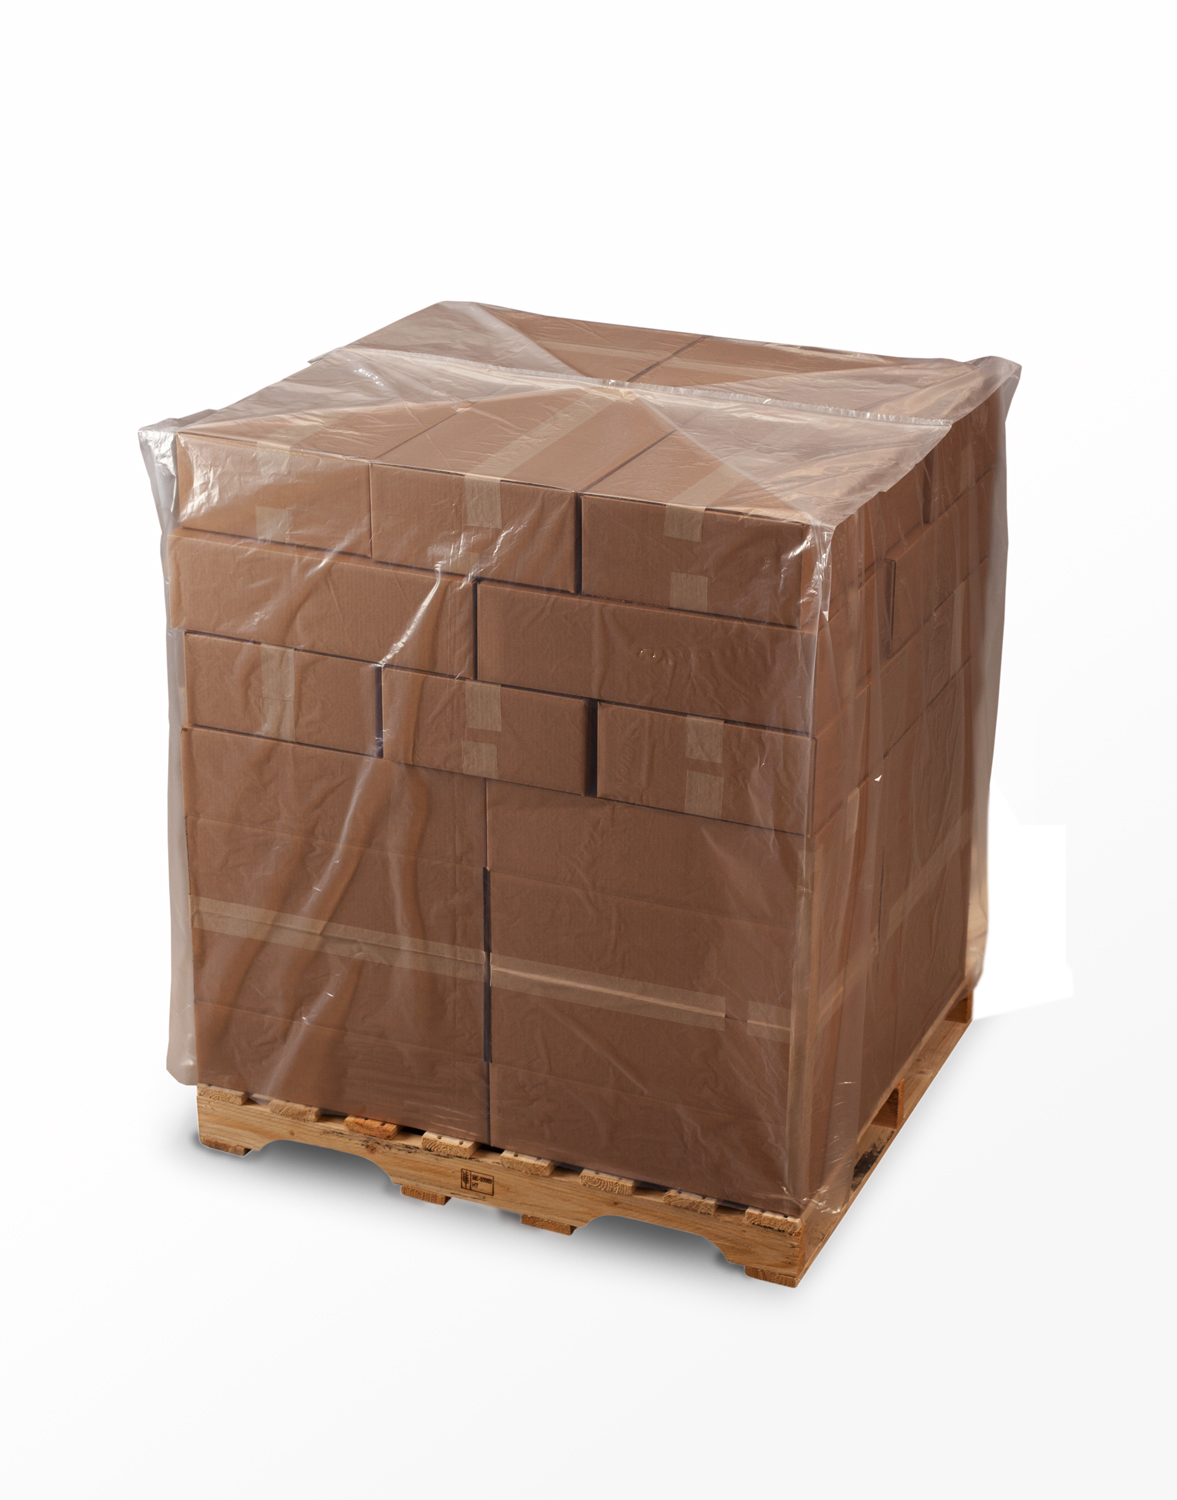 Clear Pallet Covers on Roll 58 x 46 x 125 x 4 Mil (46 in gusset) Roll:20